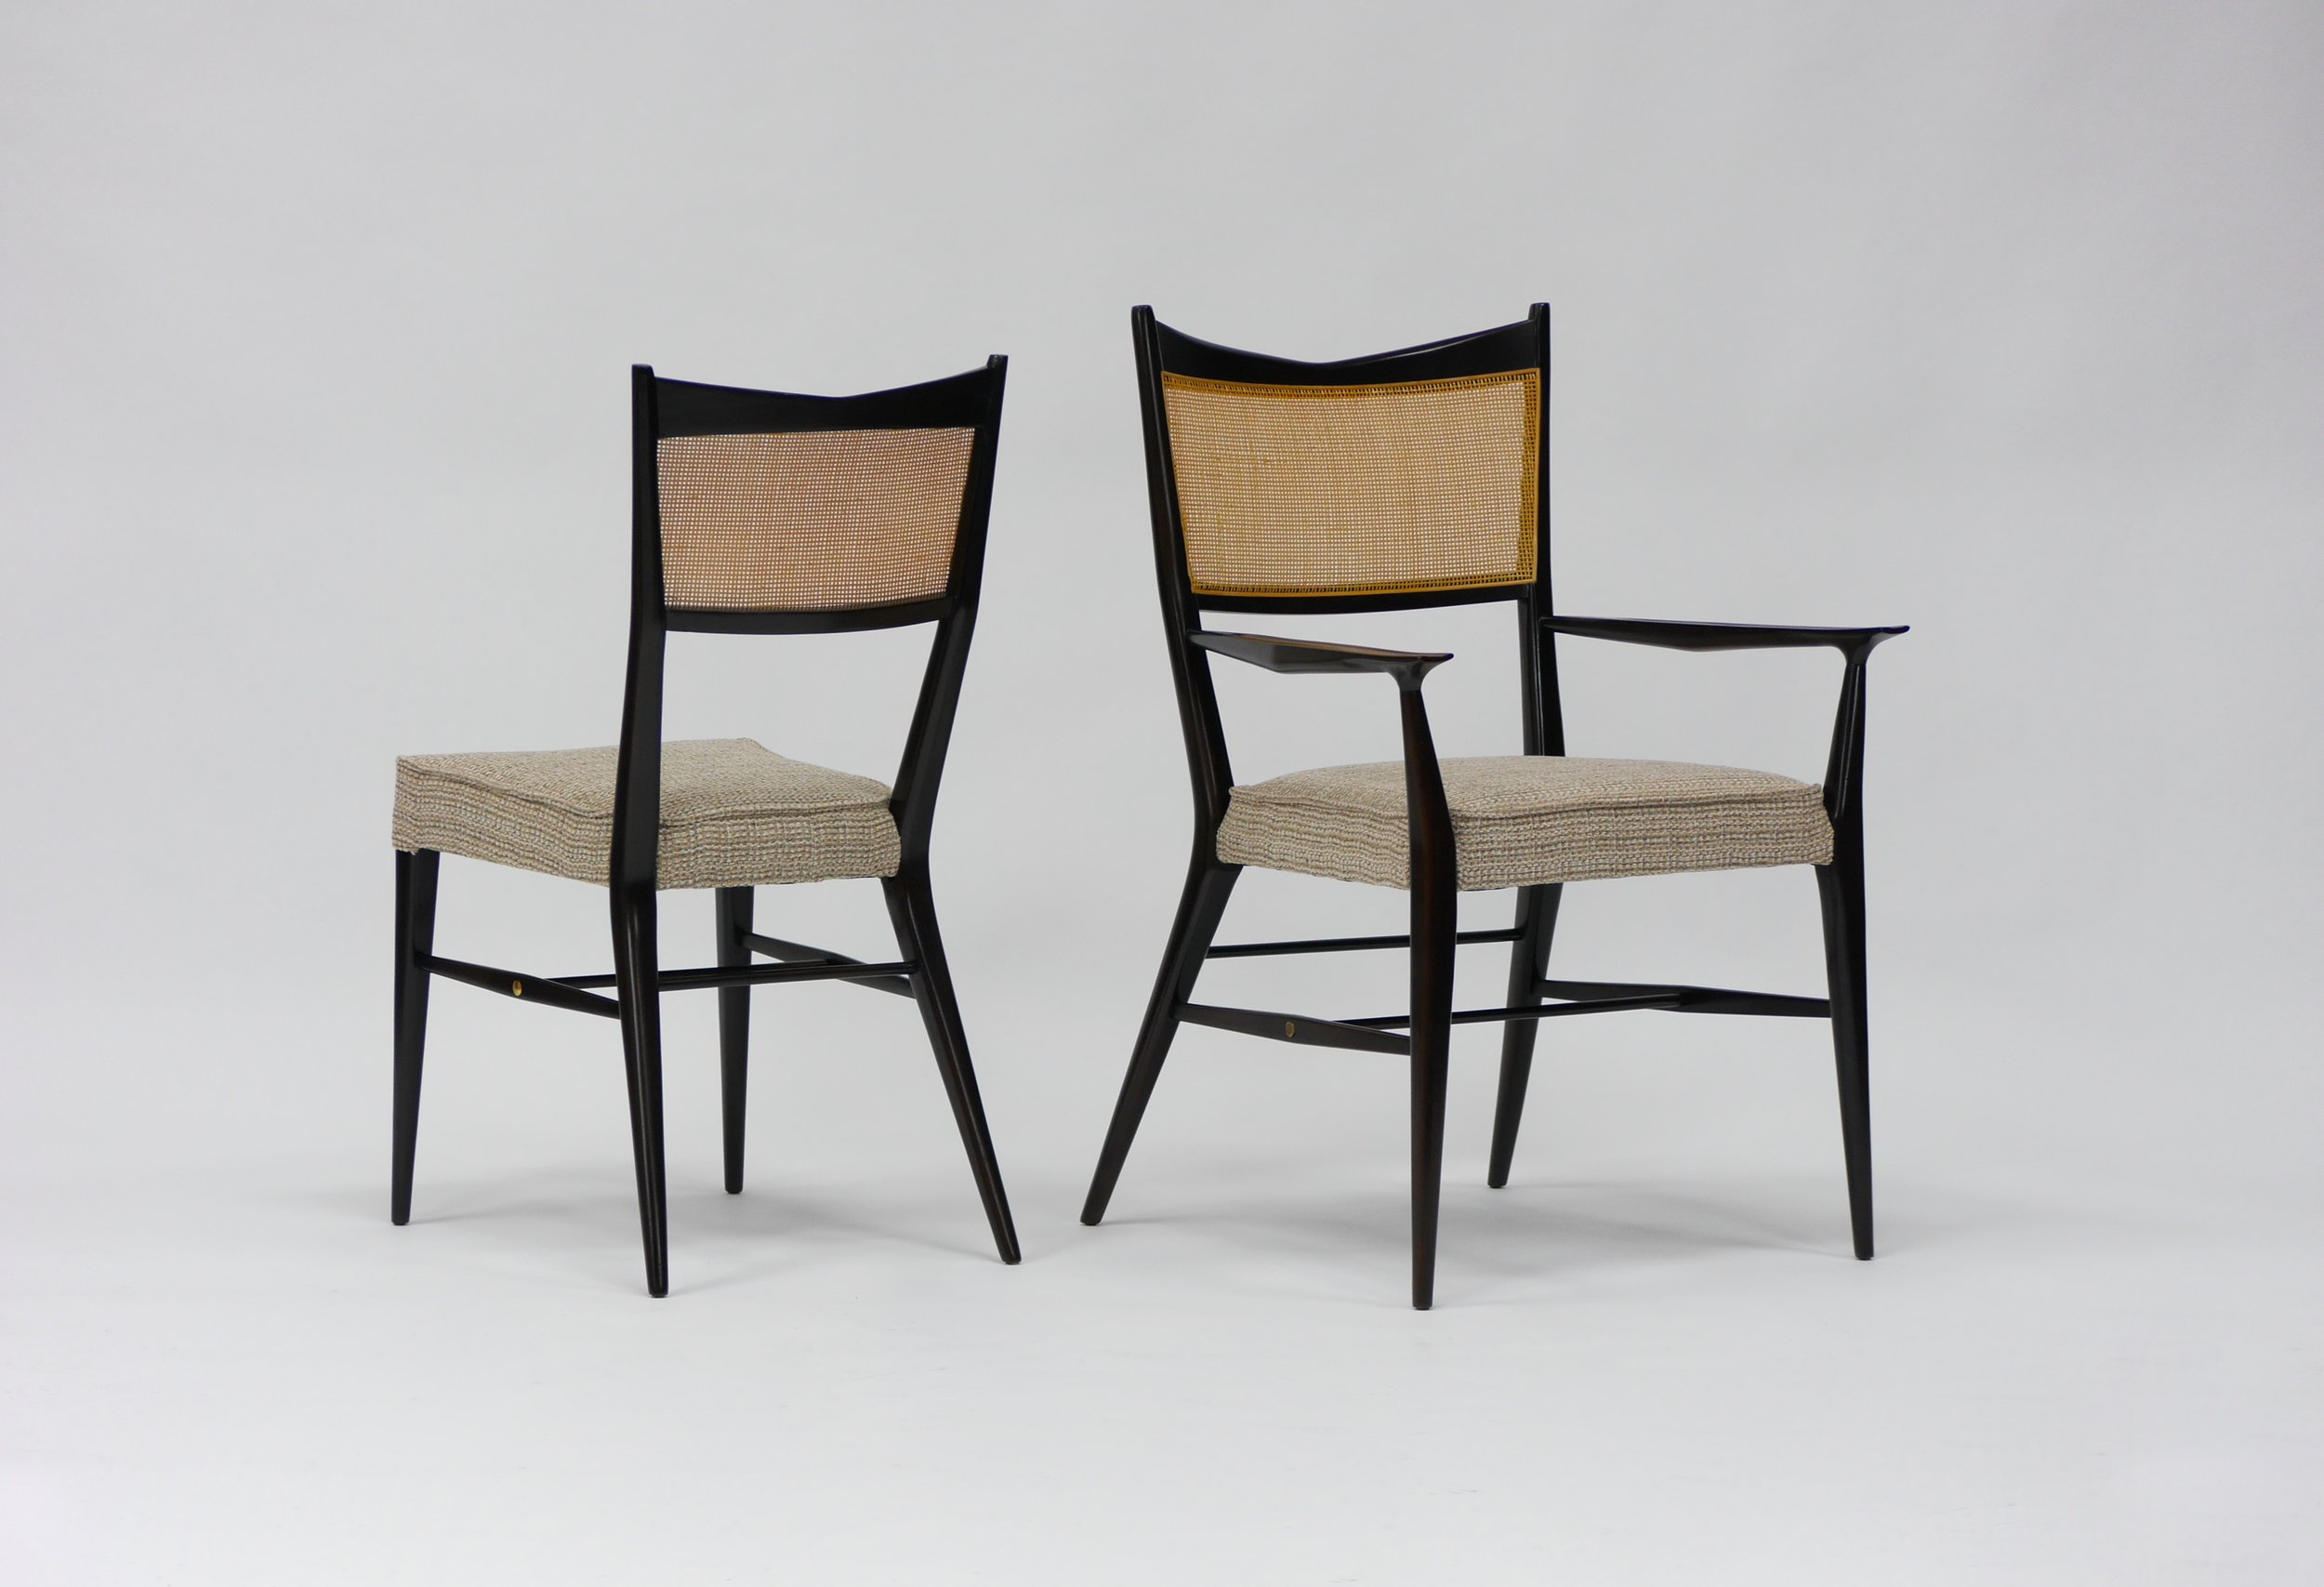 Eight Paul McCobb Irwin Collection Dining Chairs U2014 Continuum 20th Century  Design